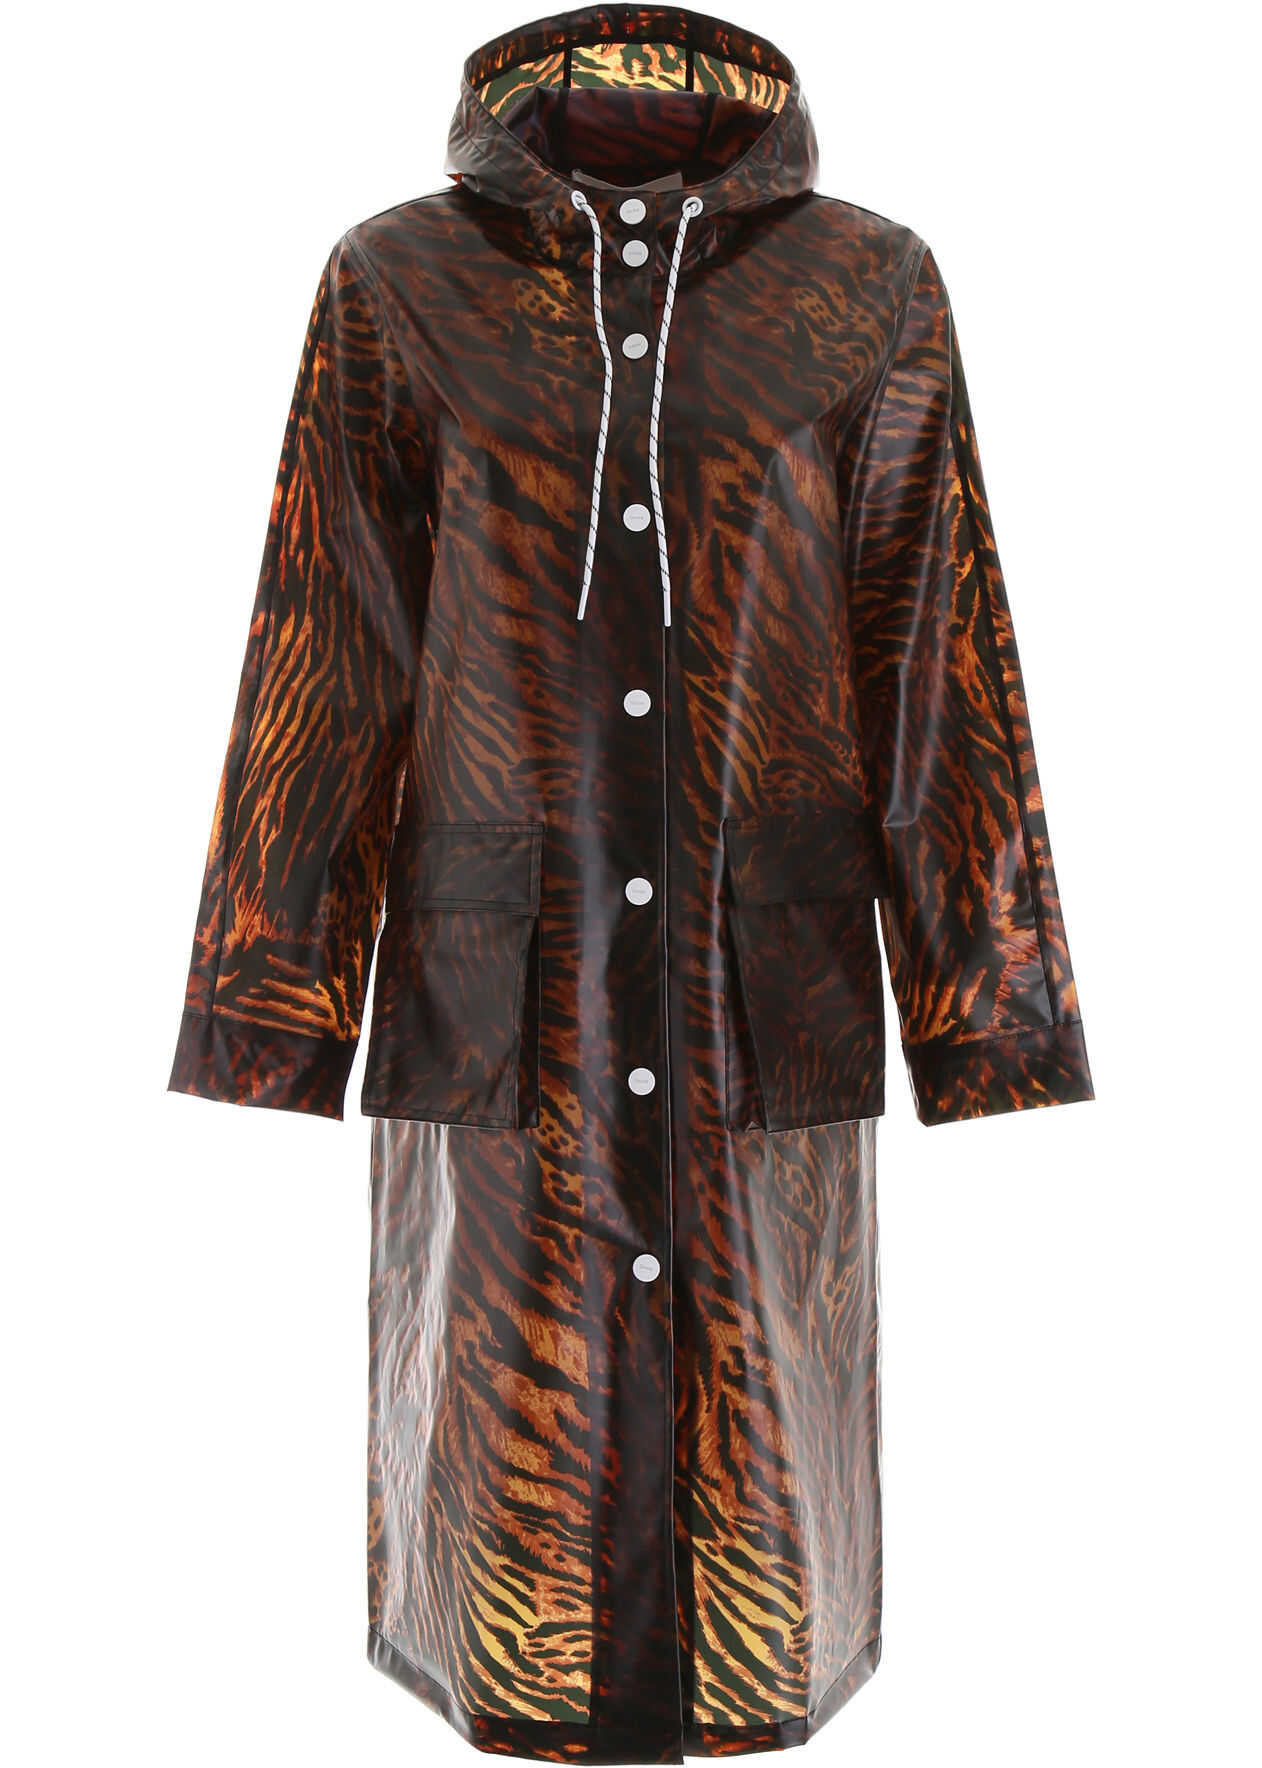 Ganni Tiger Pvc Raincoat TIGER